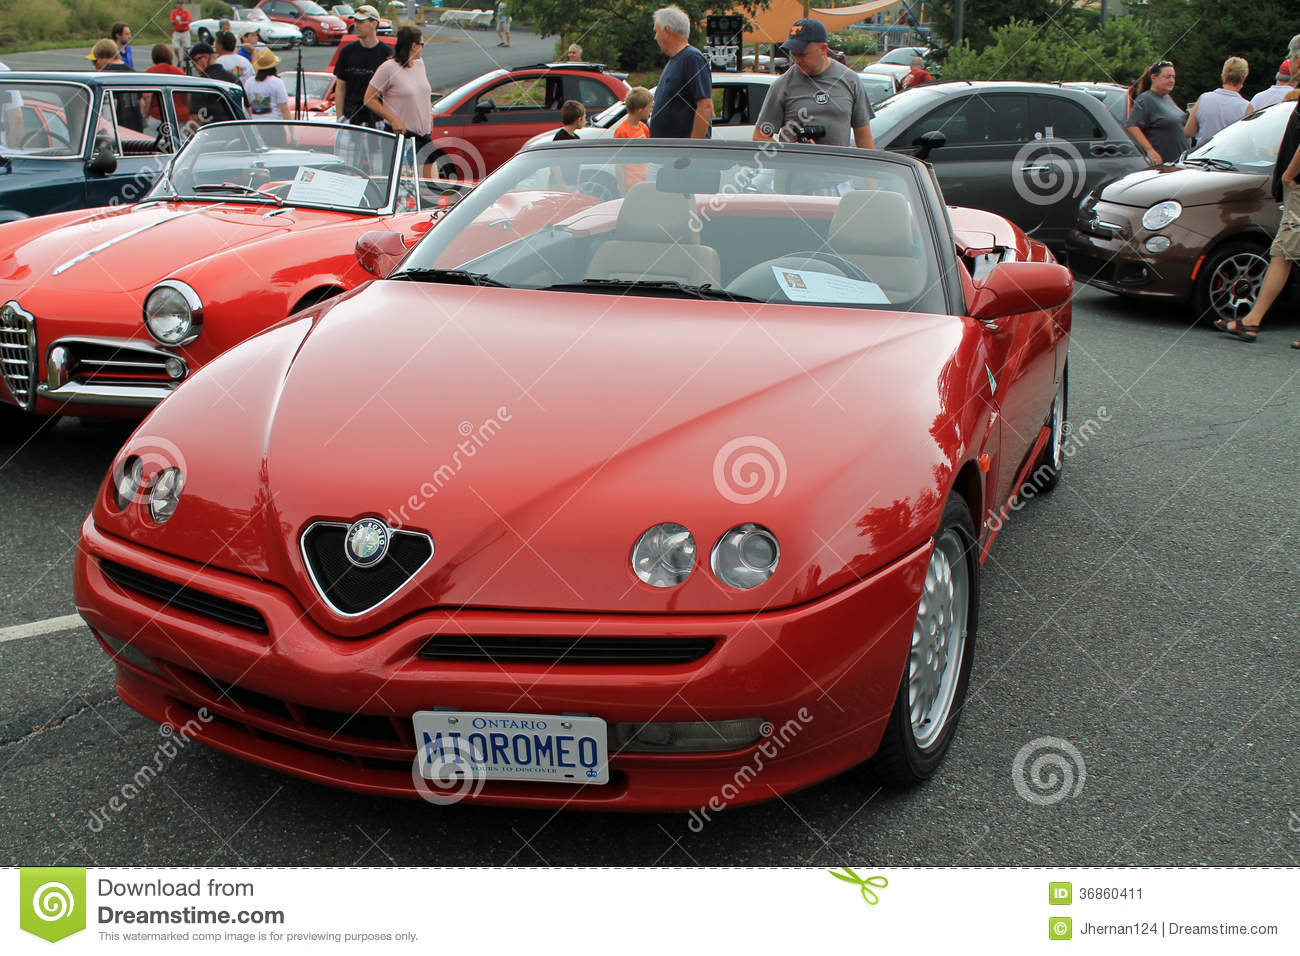 Download Alfa Romeo Spider Front View Editorial Photo   Image Of Badge,  Outdoors: 36860411